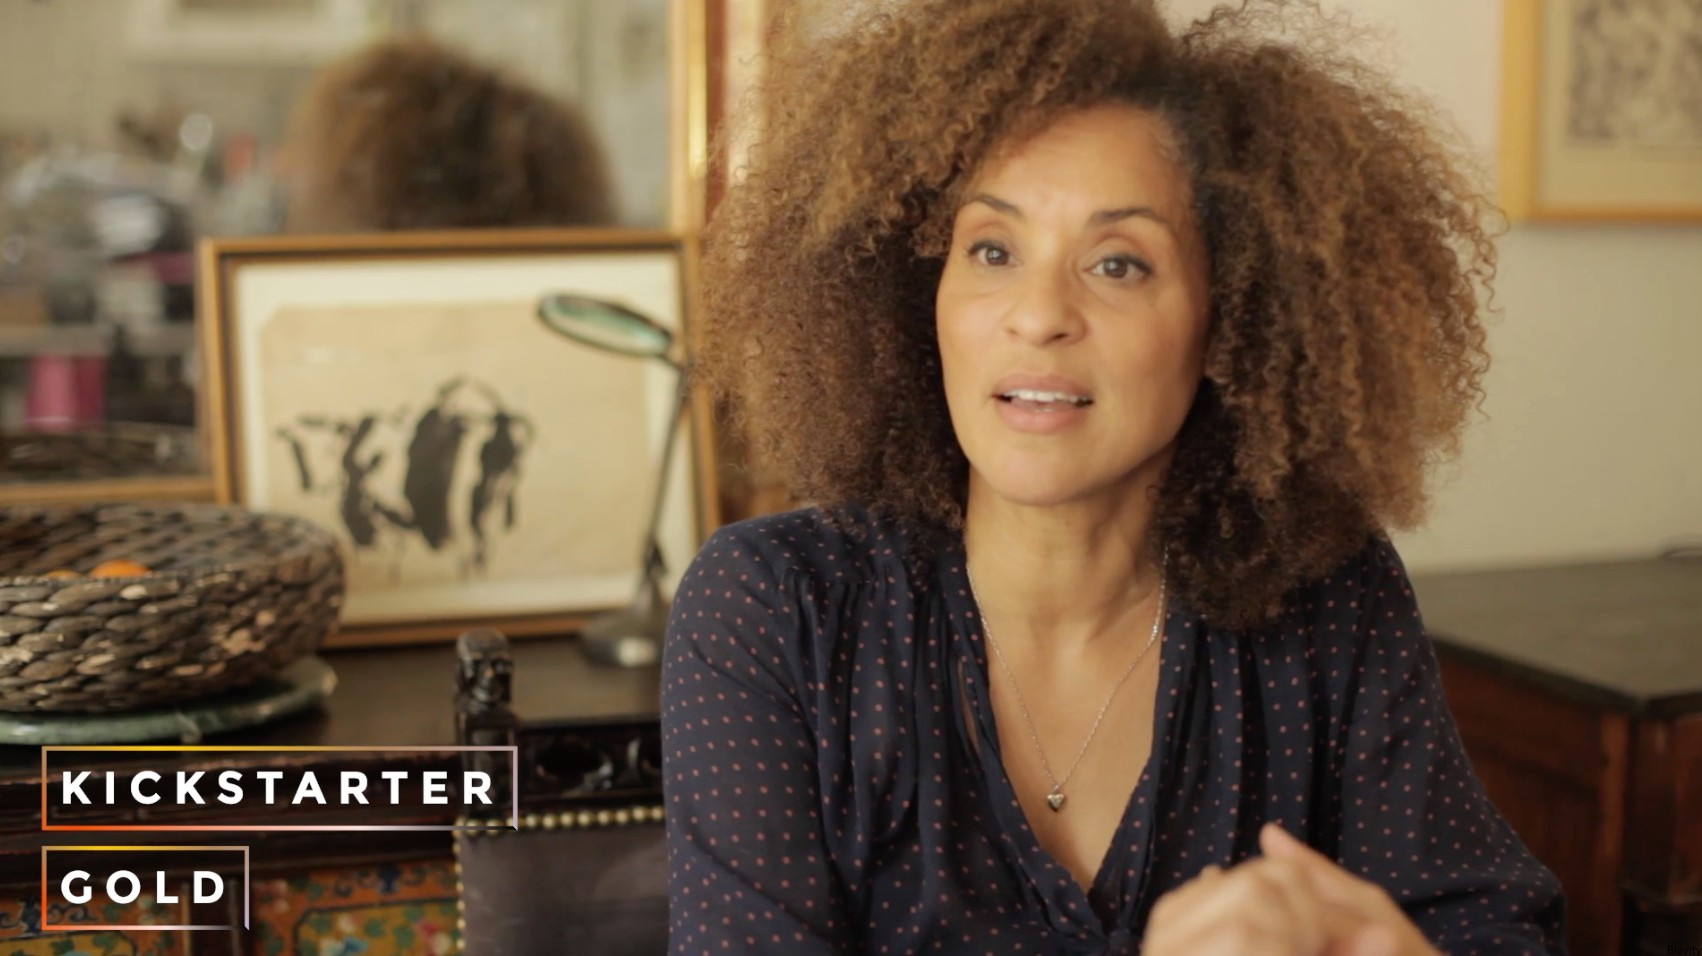 Forum on this topic: Giovanna Galletti, karyn-parsons/